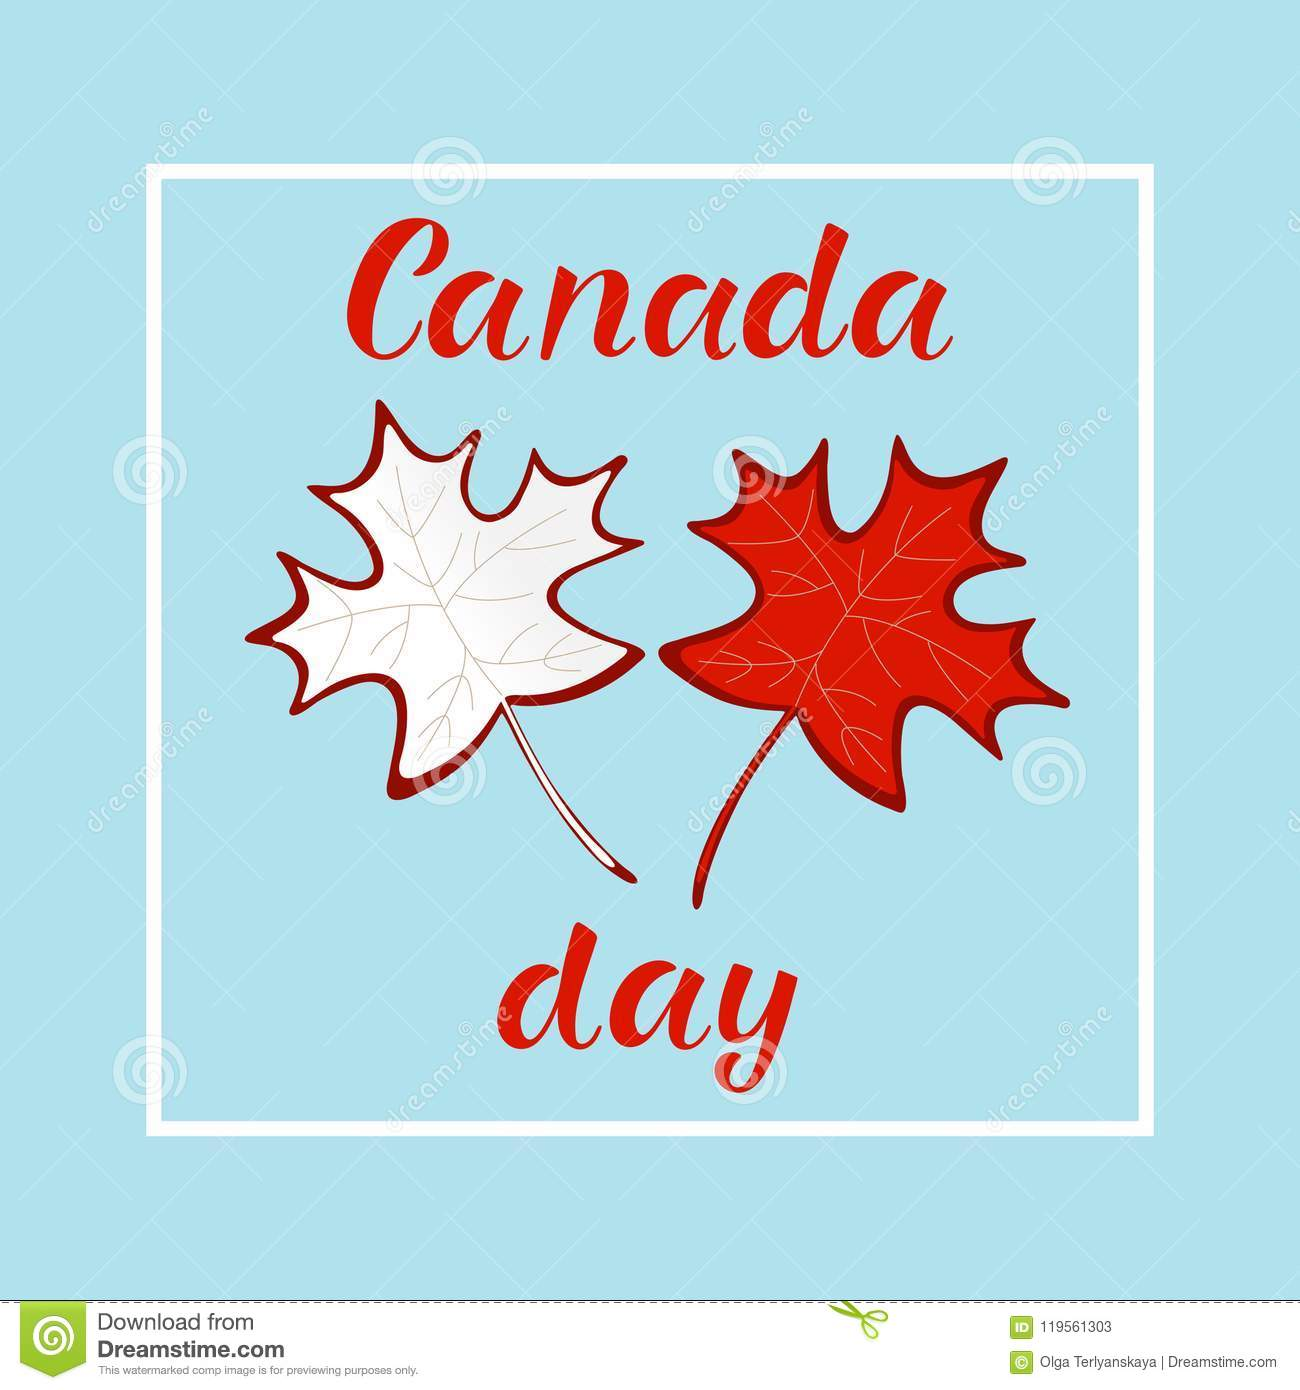 Happy Canada Day Realistic Red Maple Leafs Stock Vector Illustration Of Icon Isolated 119561303